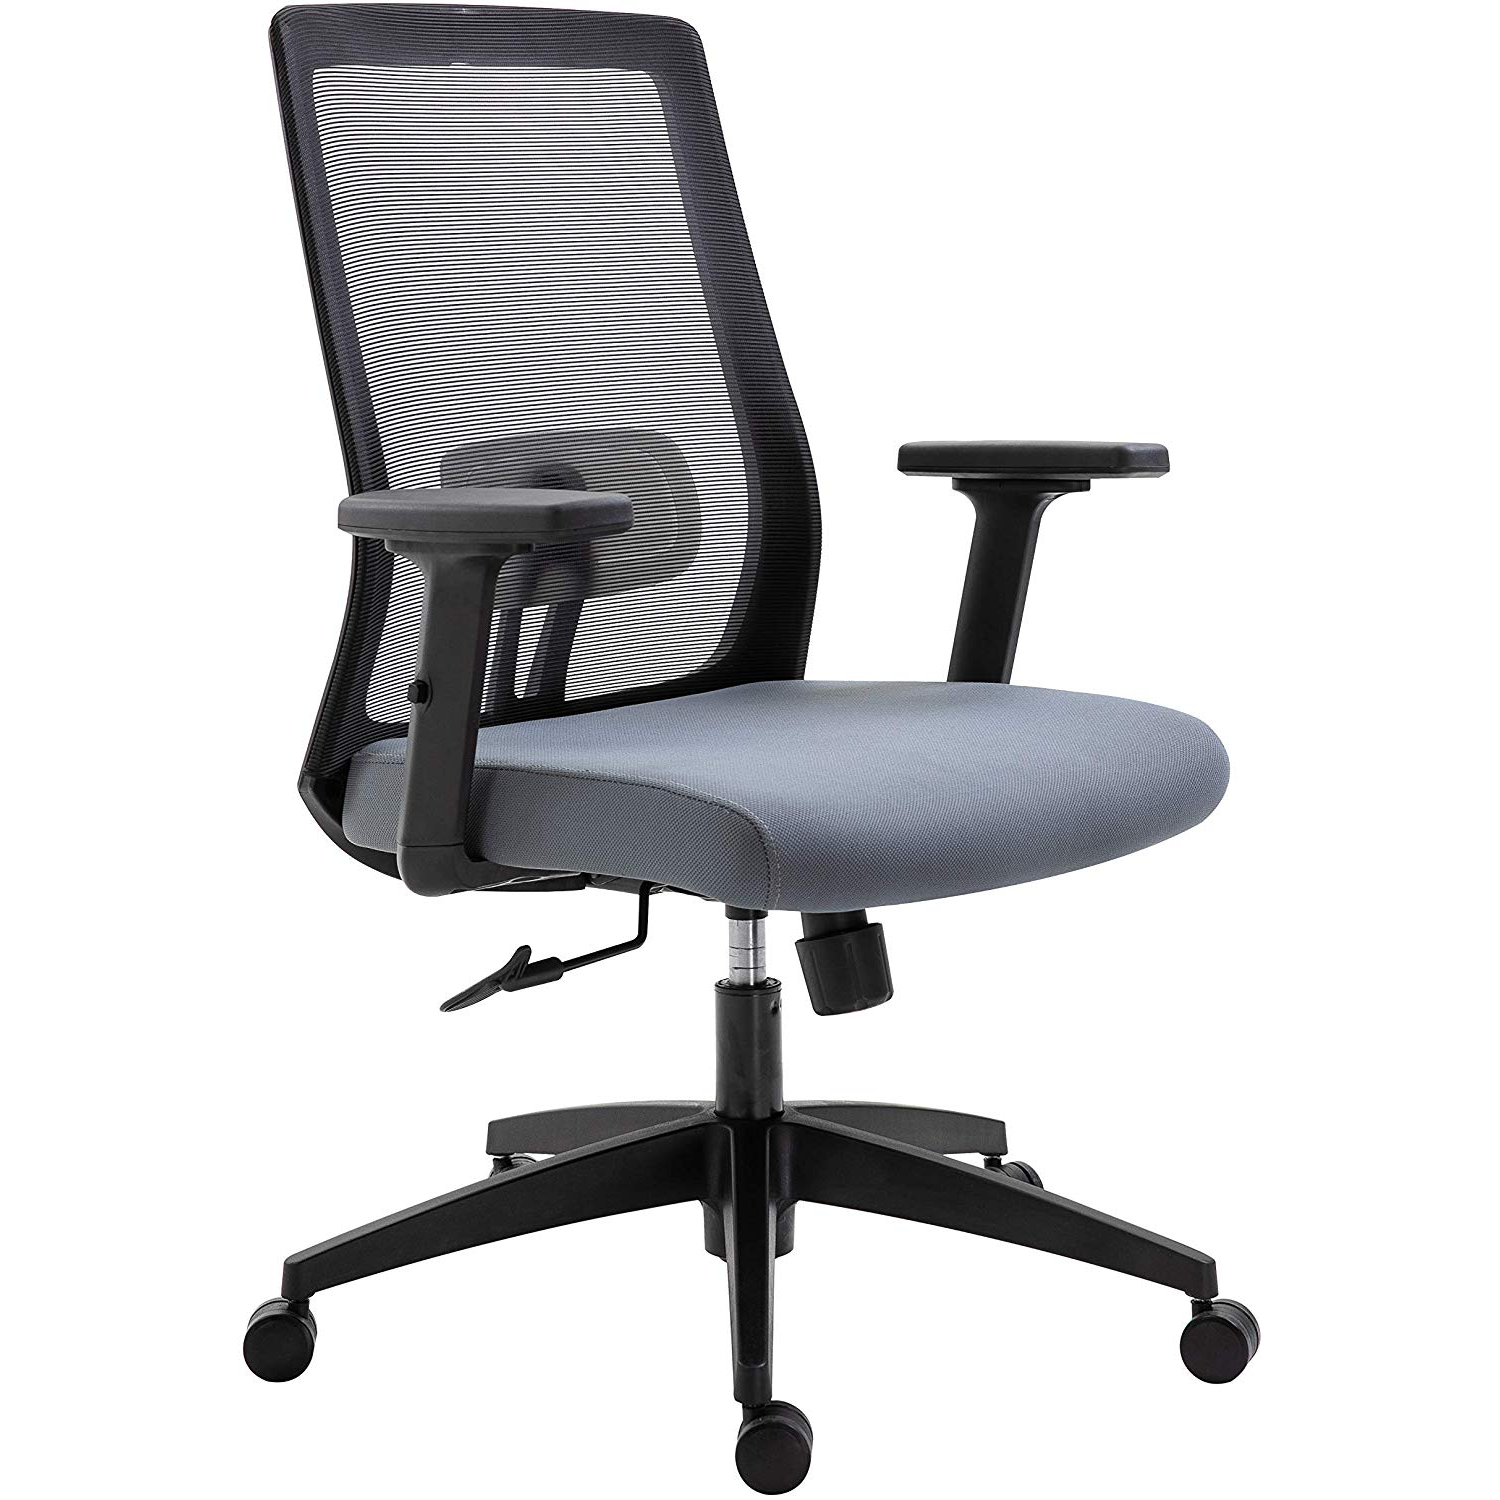 Cherry Tree Furniture Mesh Fabric Desk Chair Office Chair with Adjustable Armrests & Lumbar Support Grey, Without Headrest